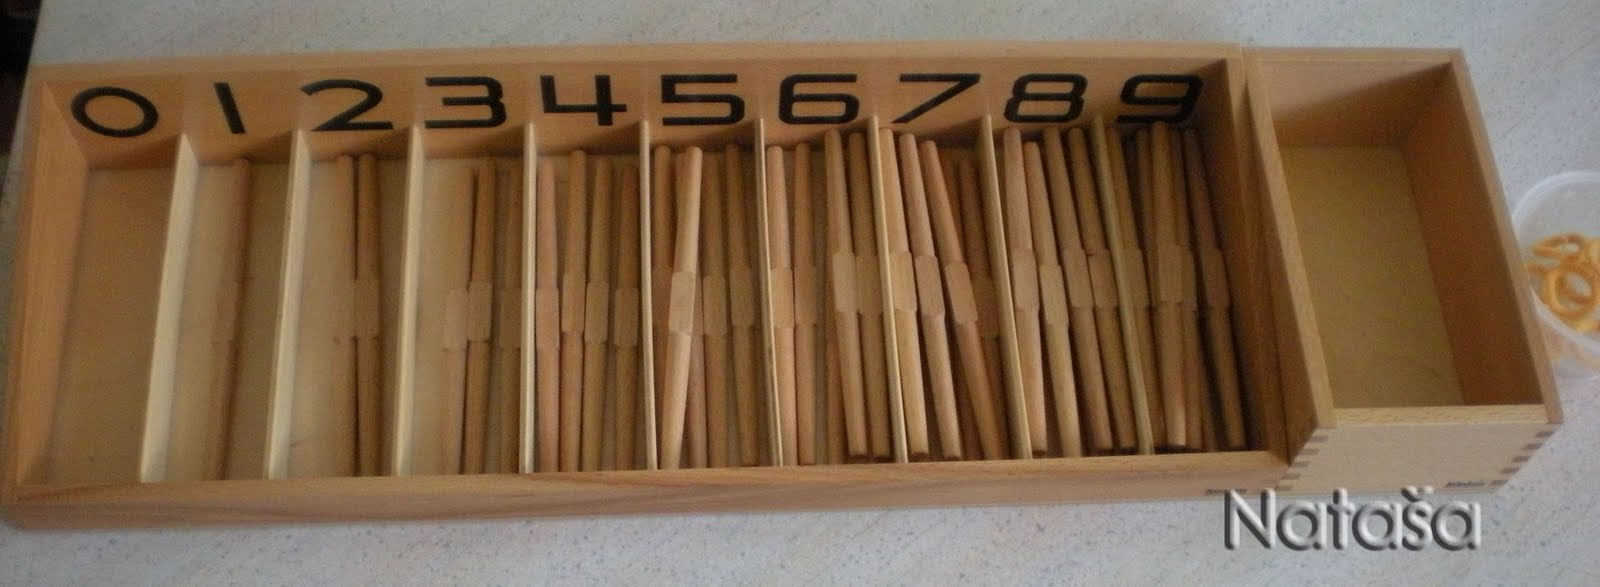 Purchased Spindle Box for a Montessori School (Photo from Leptir)